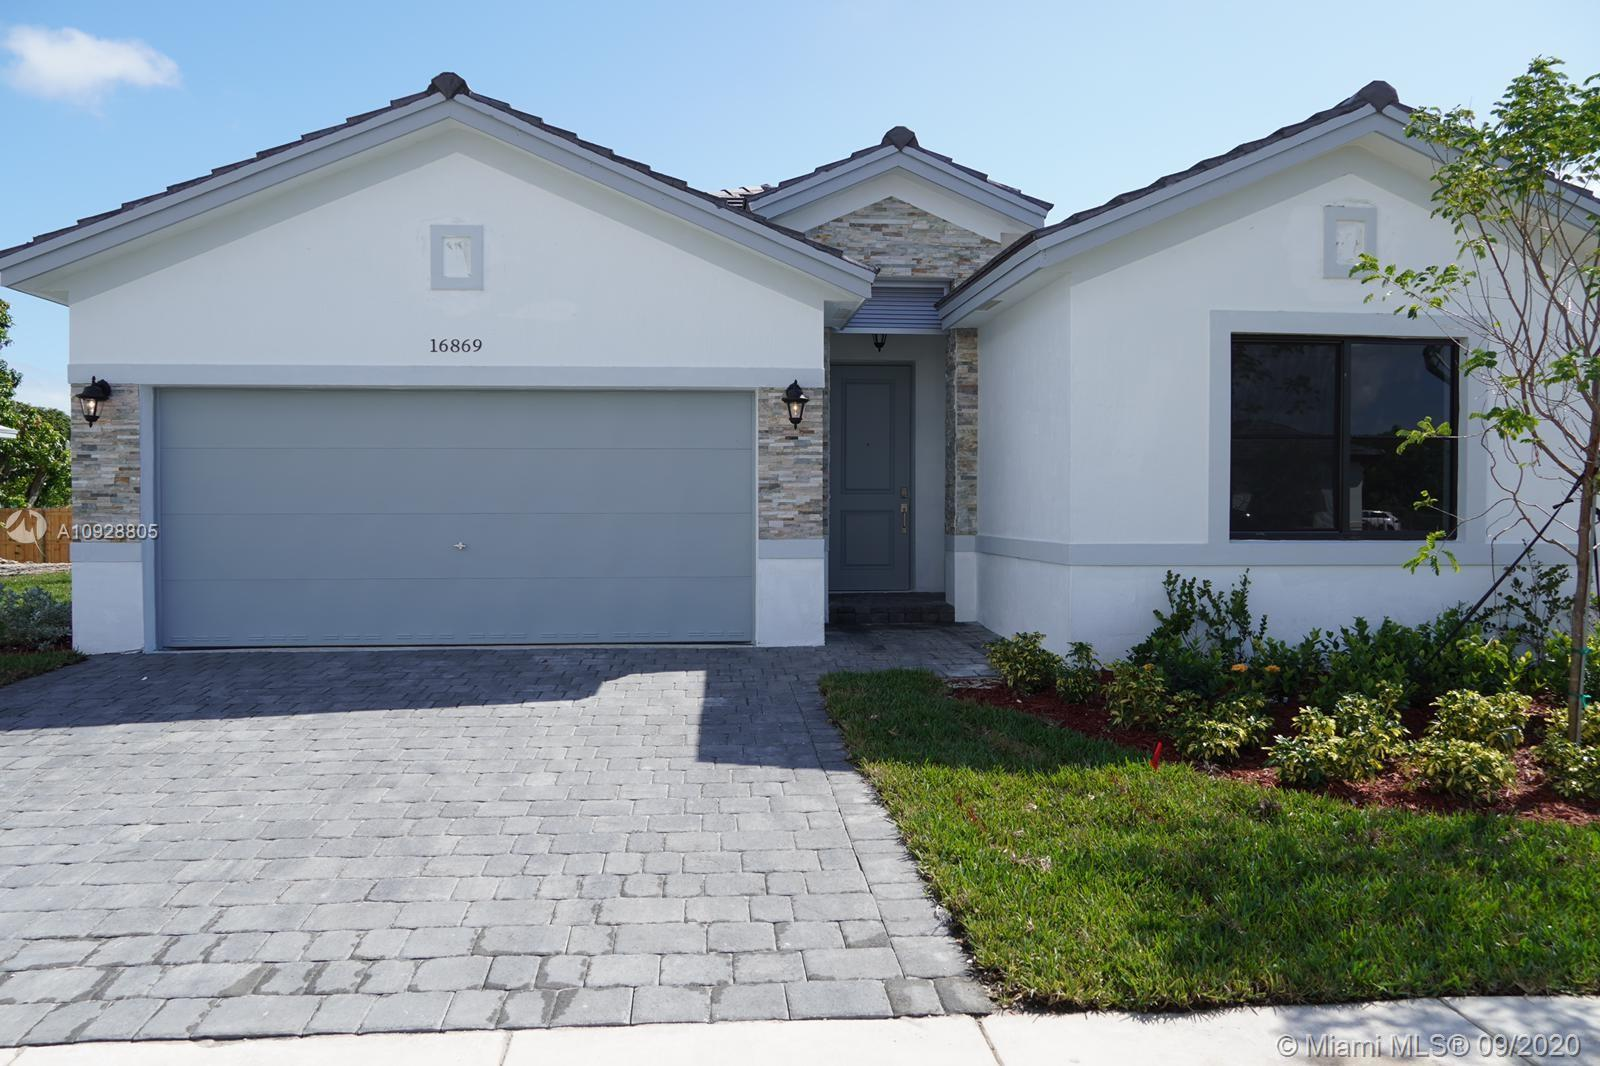 15721 SW 299th St Property Photo - Homestead, FL real estate listing